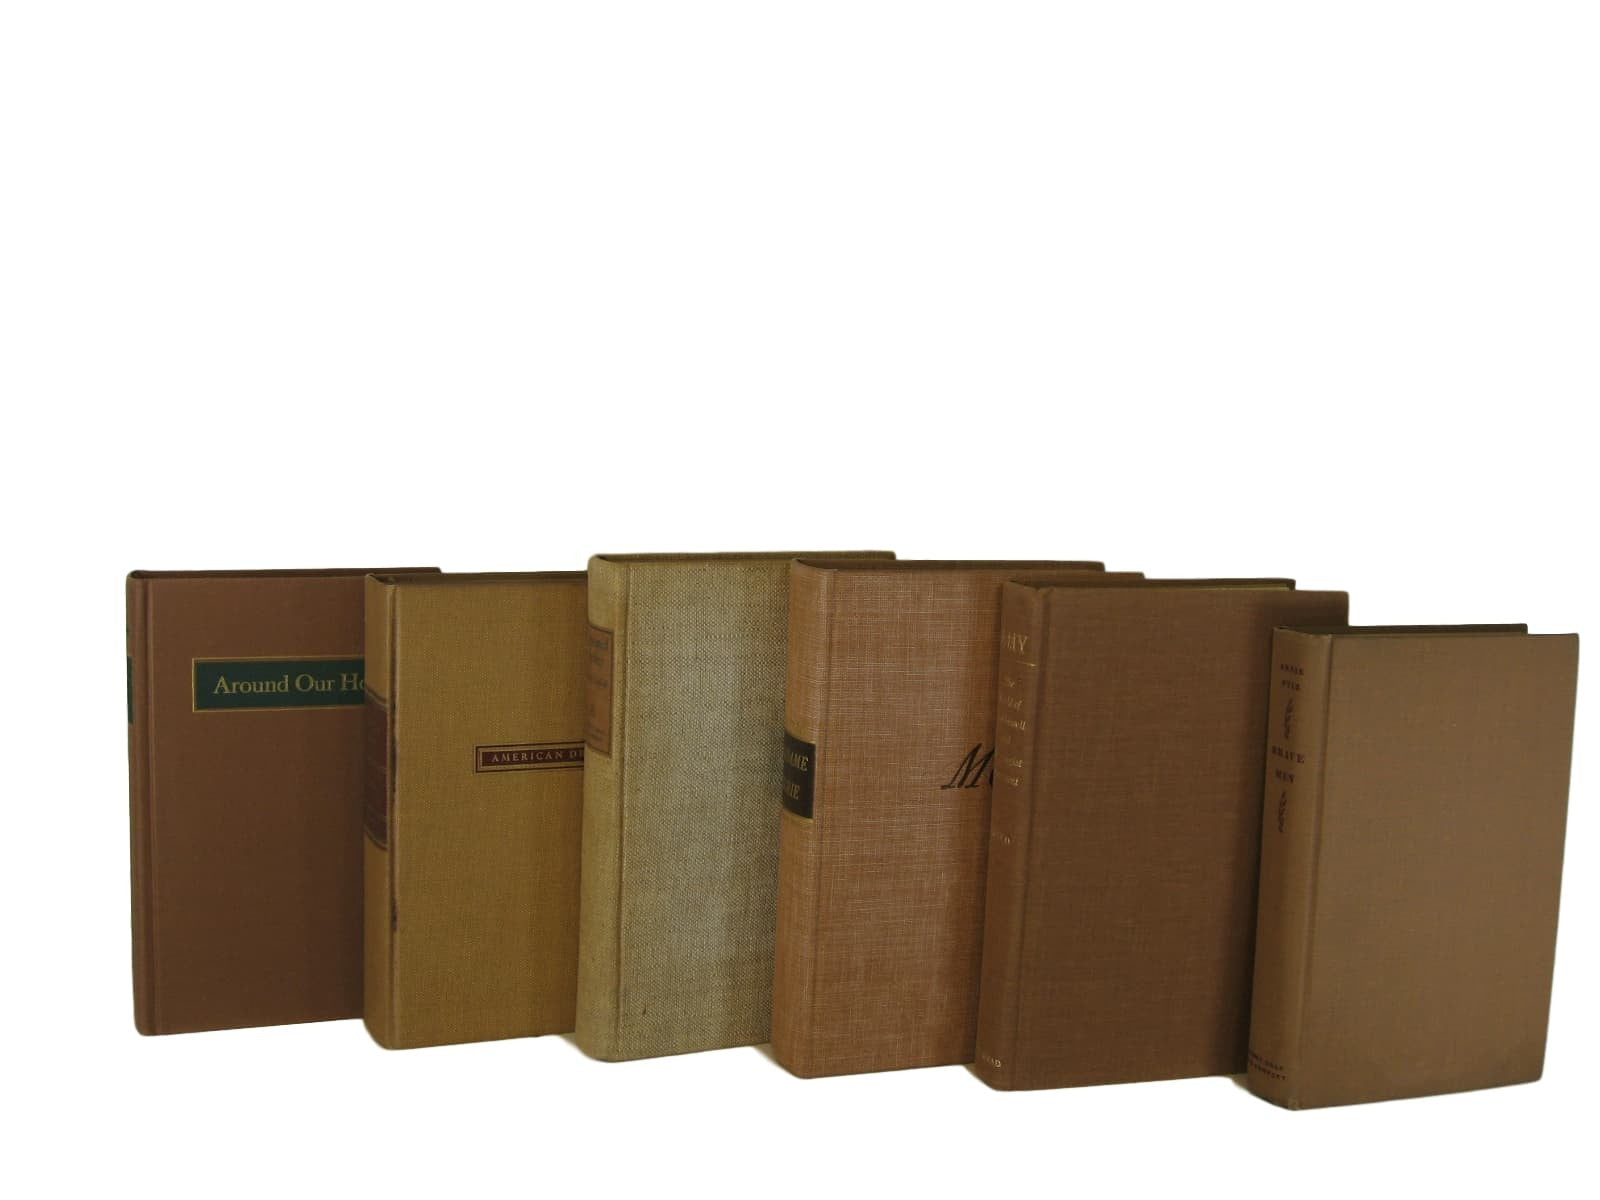 Brown Vintage Books  for Decor, S/6 - Decades of Vintage